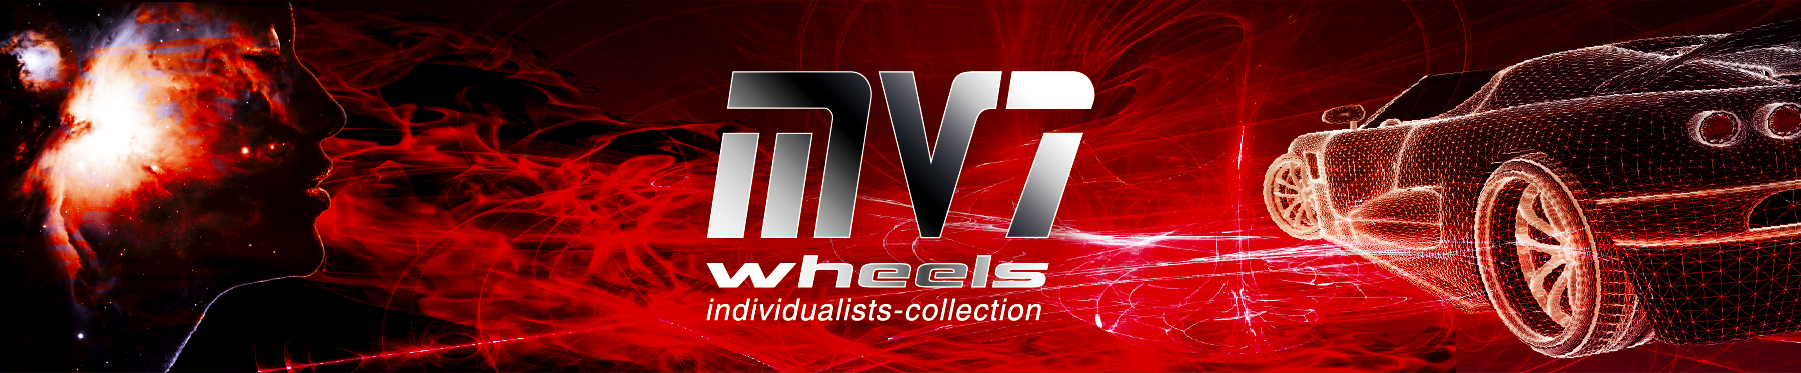 Header MV7-Wheels individualists-collection